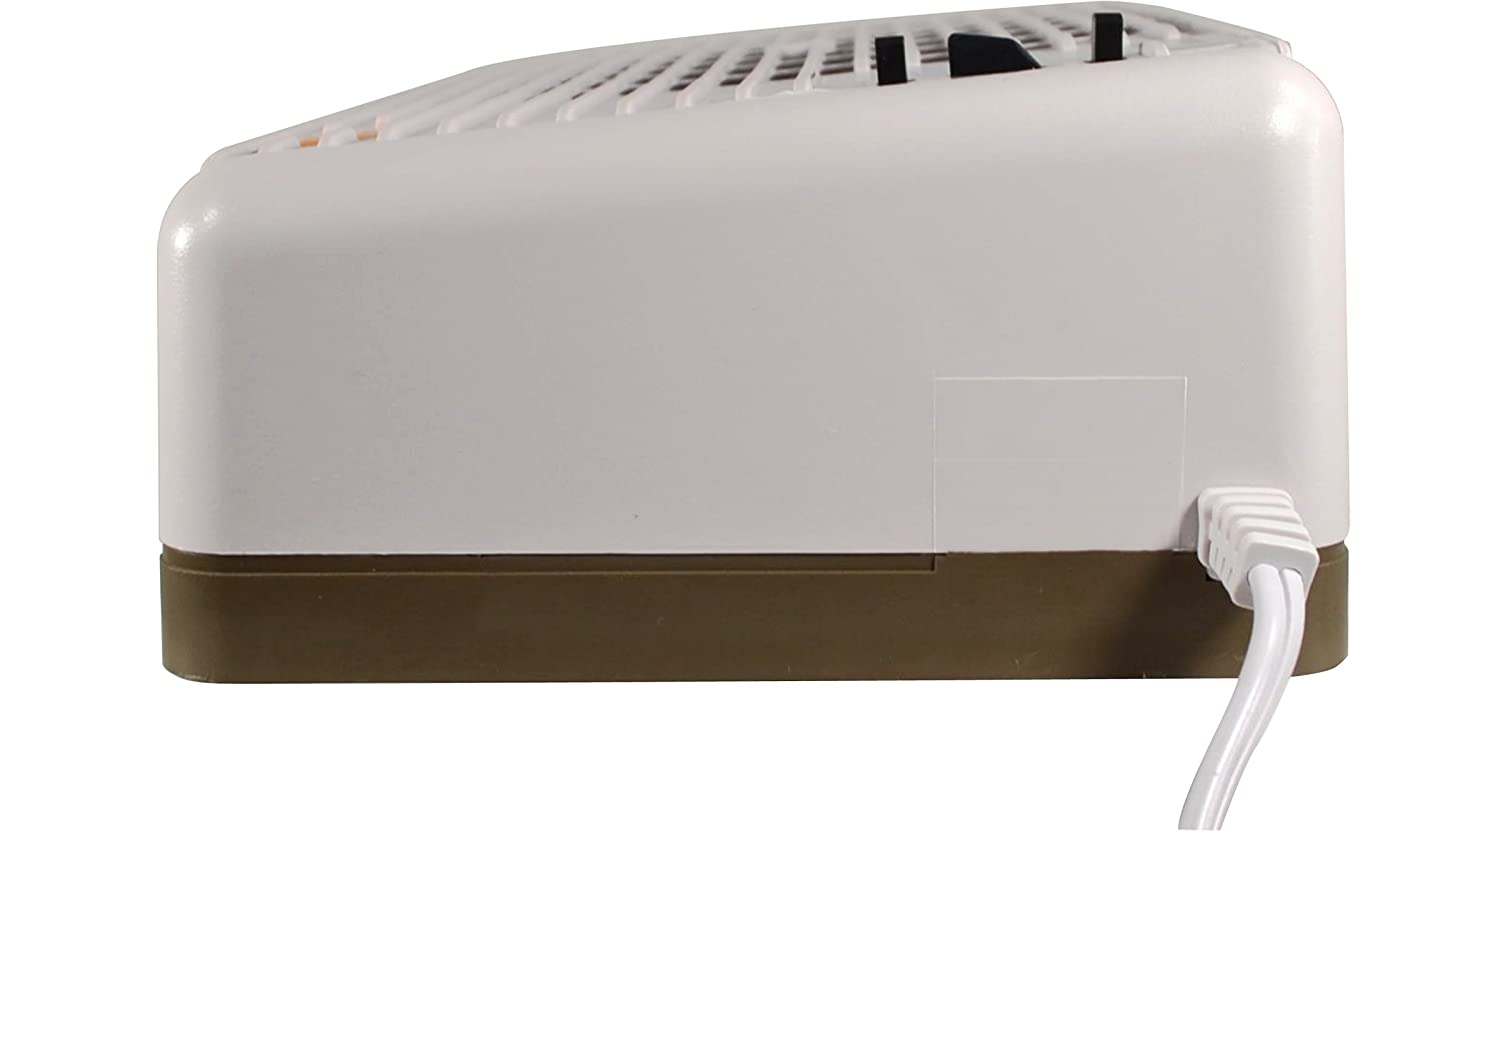 Suncourt Equalizer Eq2 Register Booster Improve Heating And Air Hvac Drawing List Conditioning Efforts Vent Fans